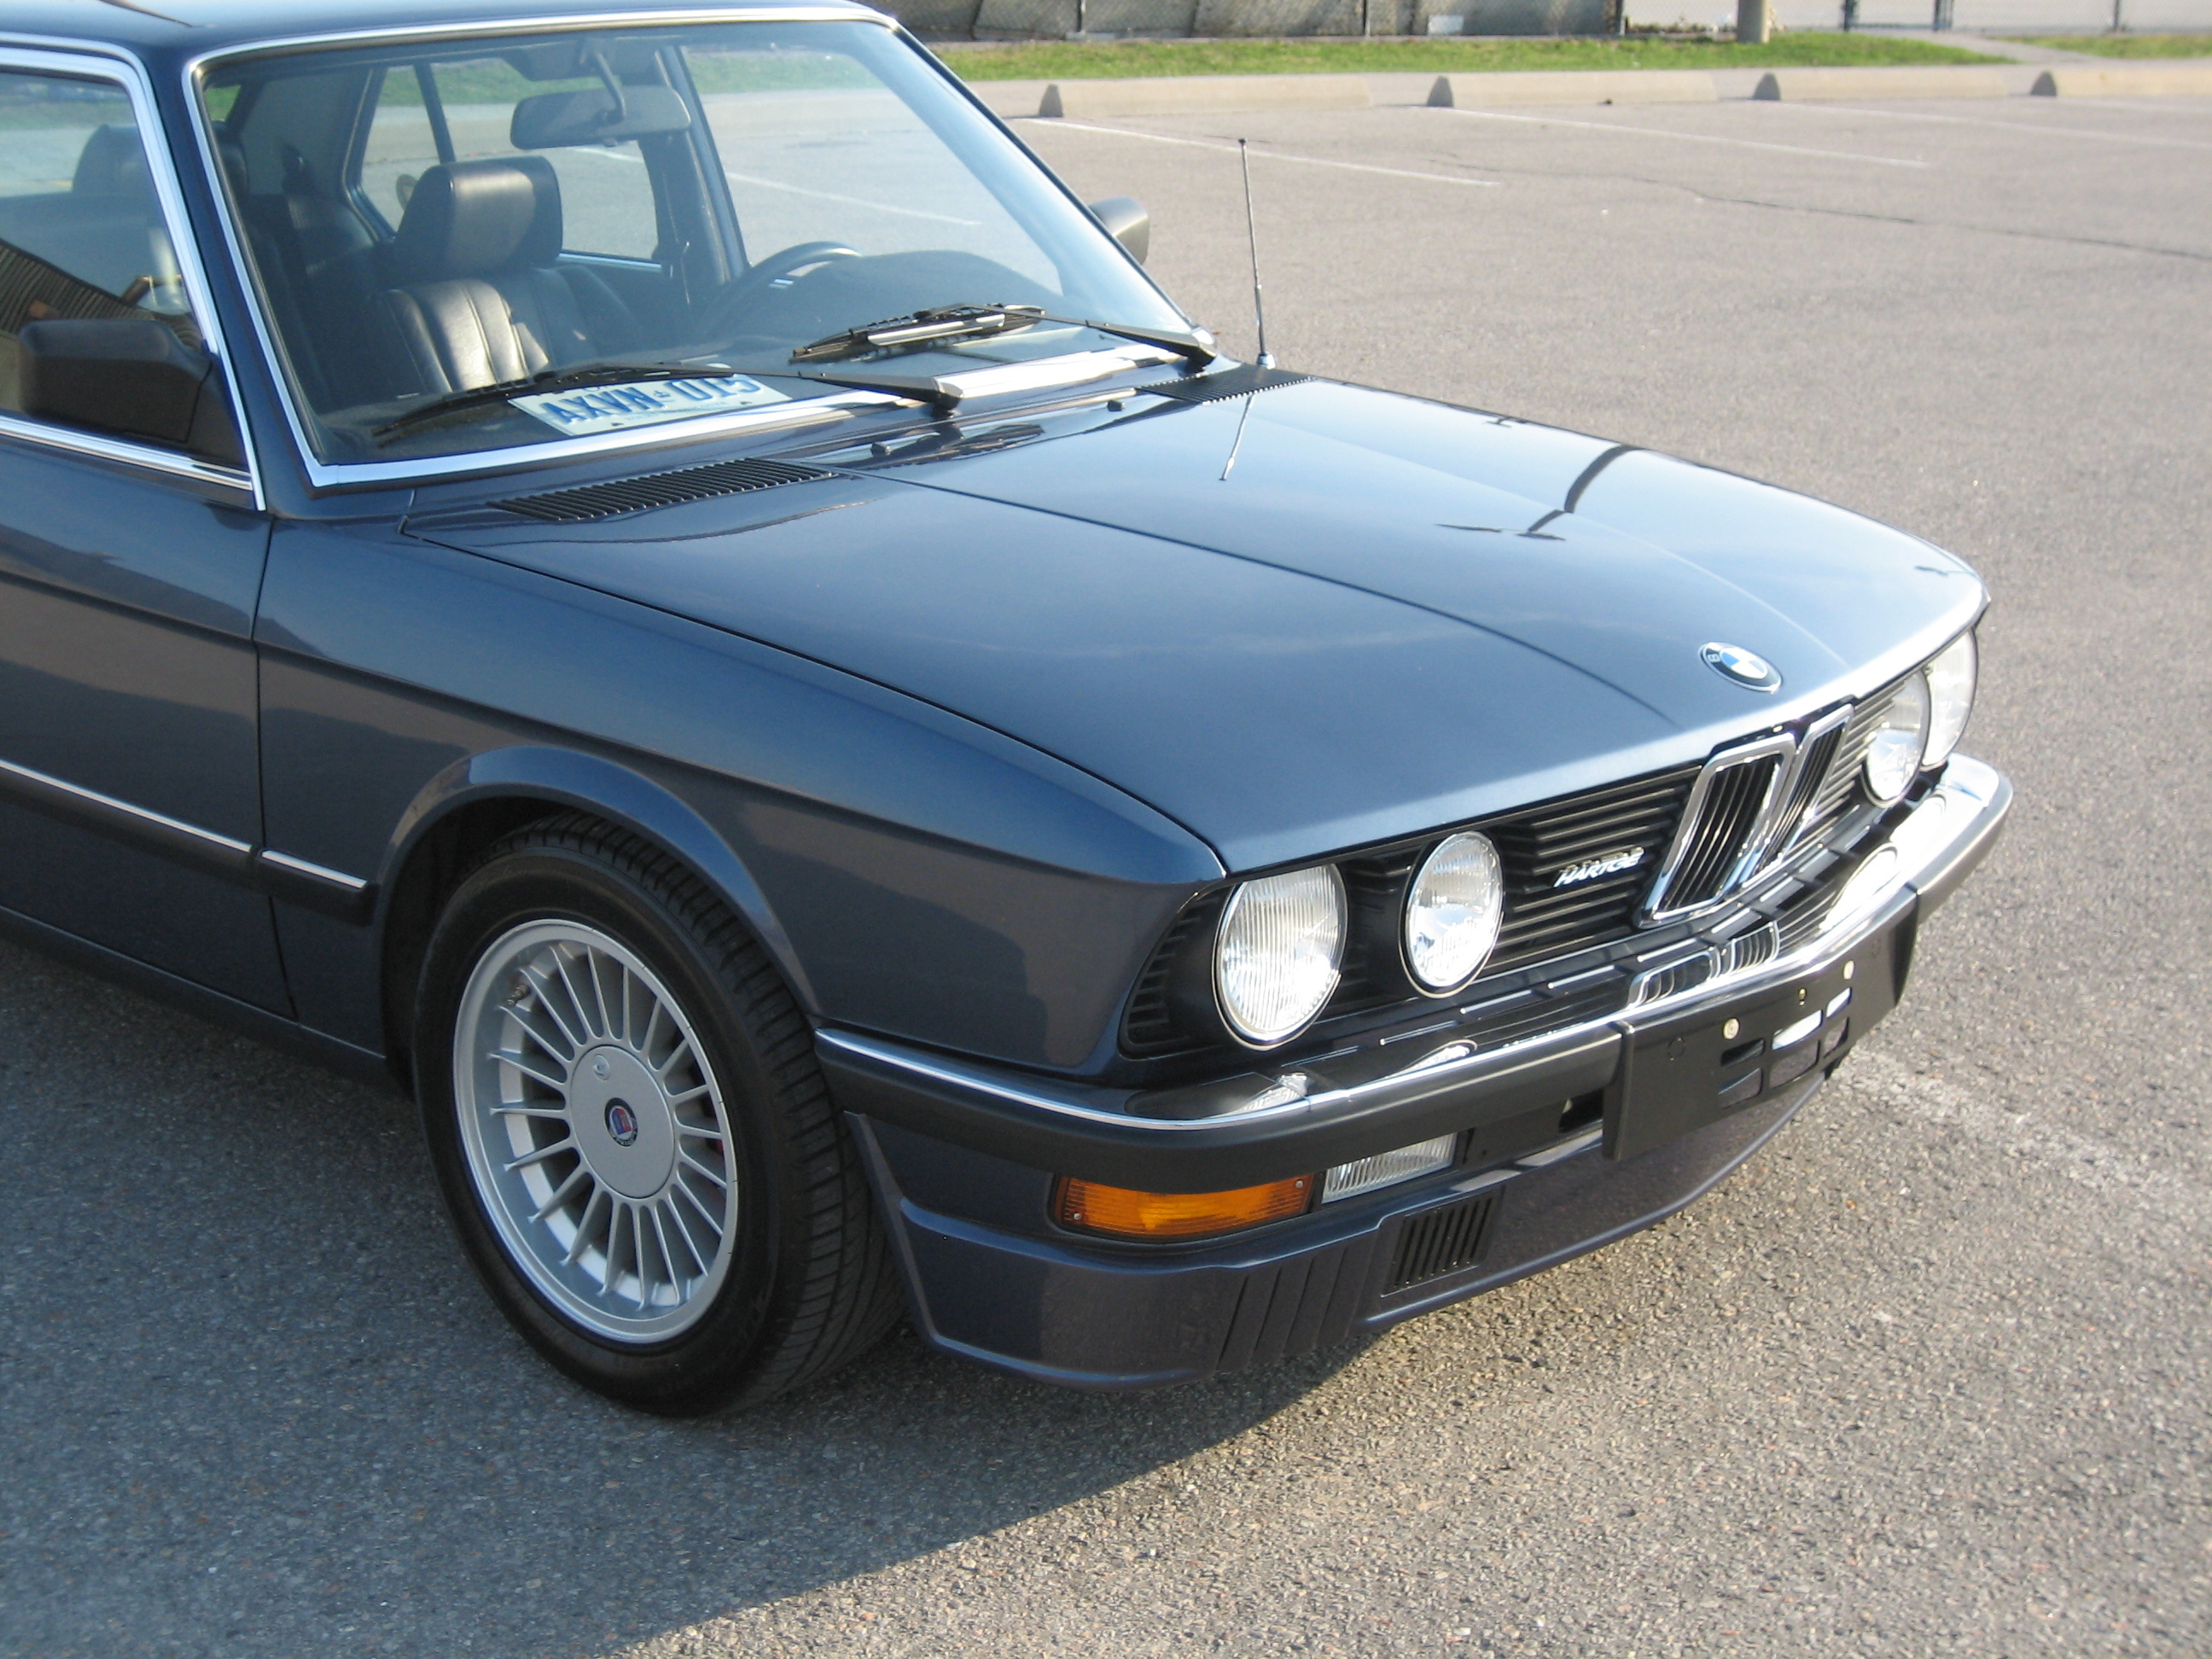 ALPINAMAN 1983 BMW 5 Series 18850686